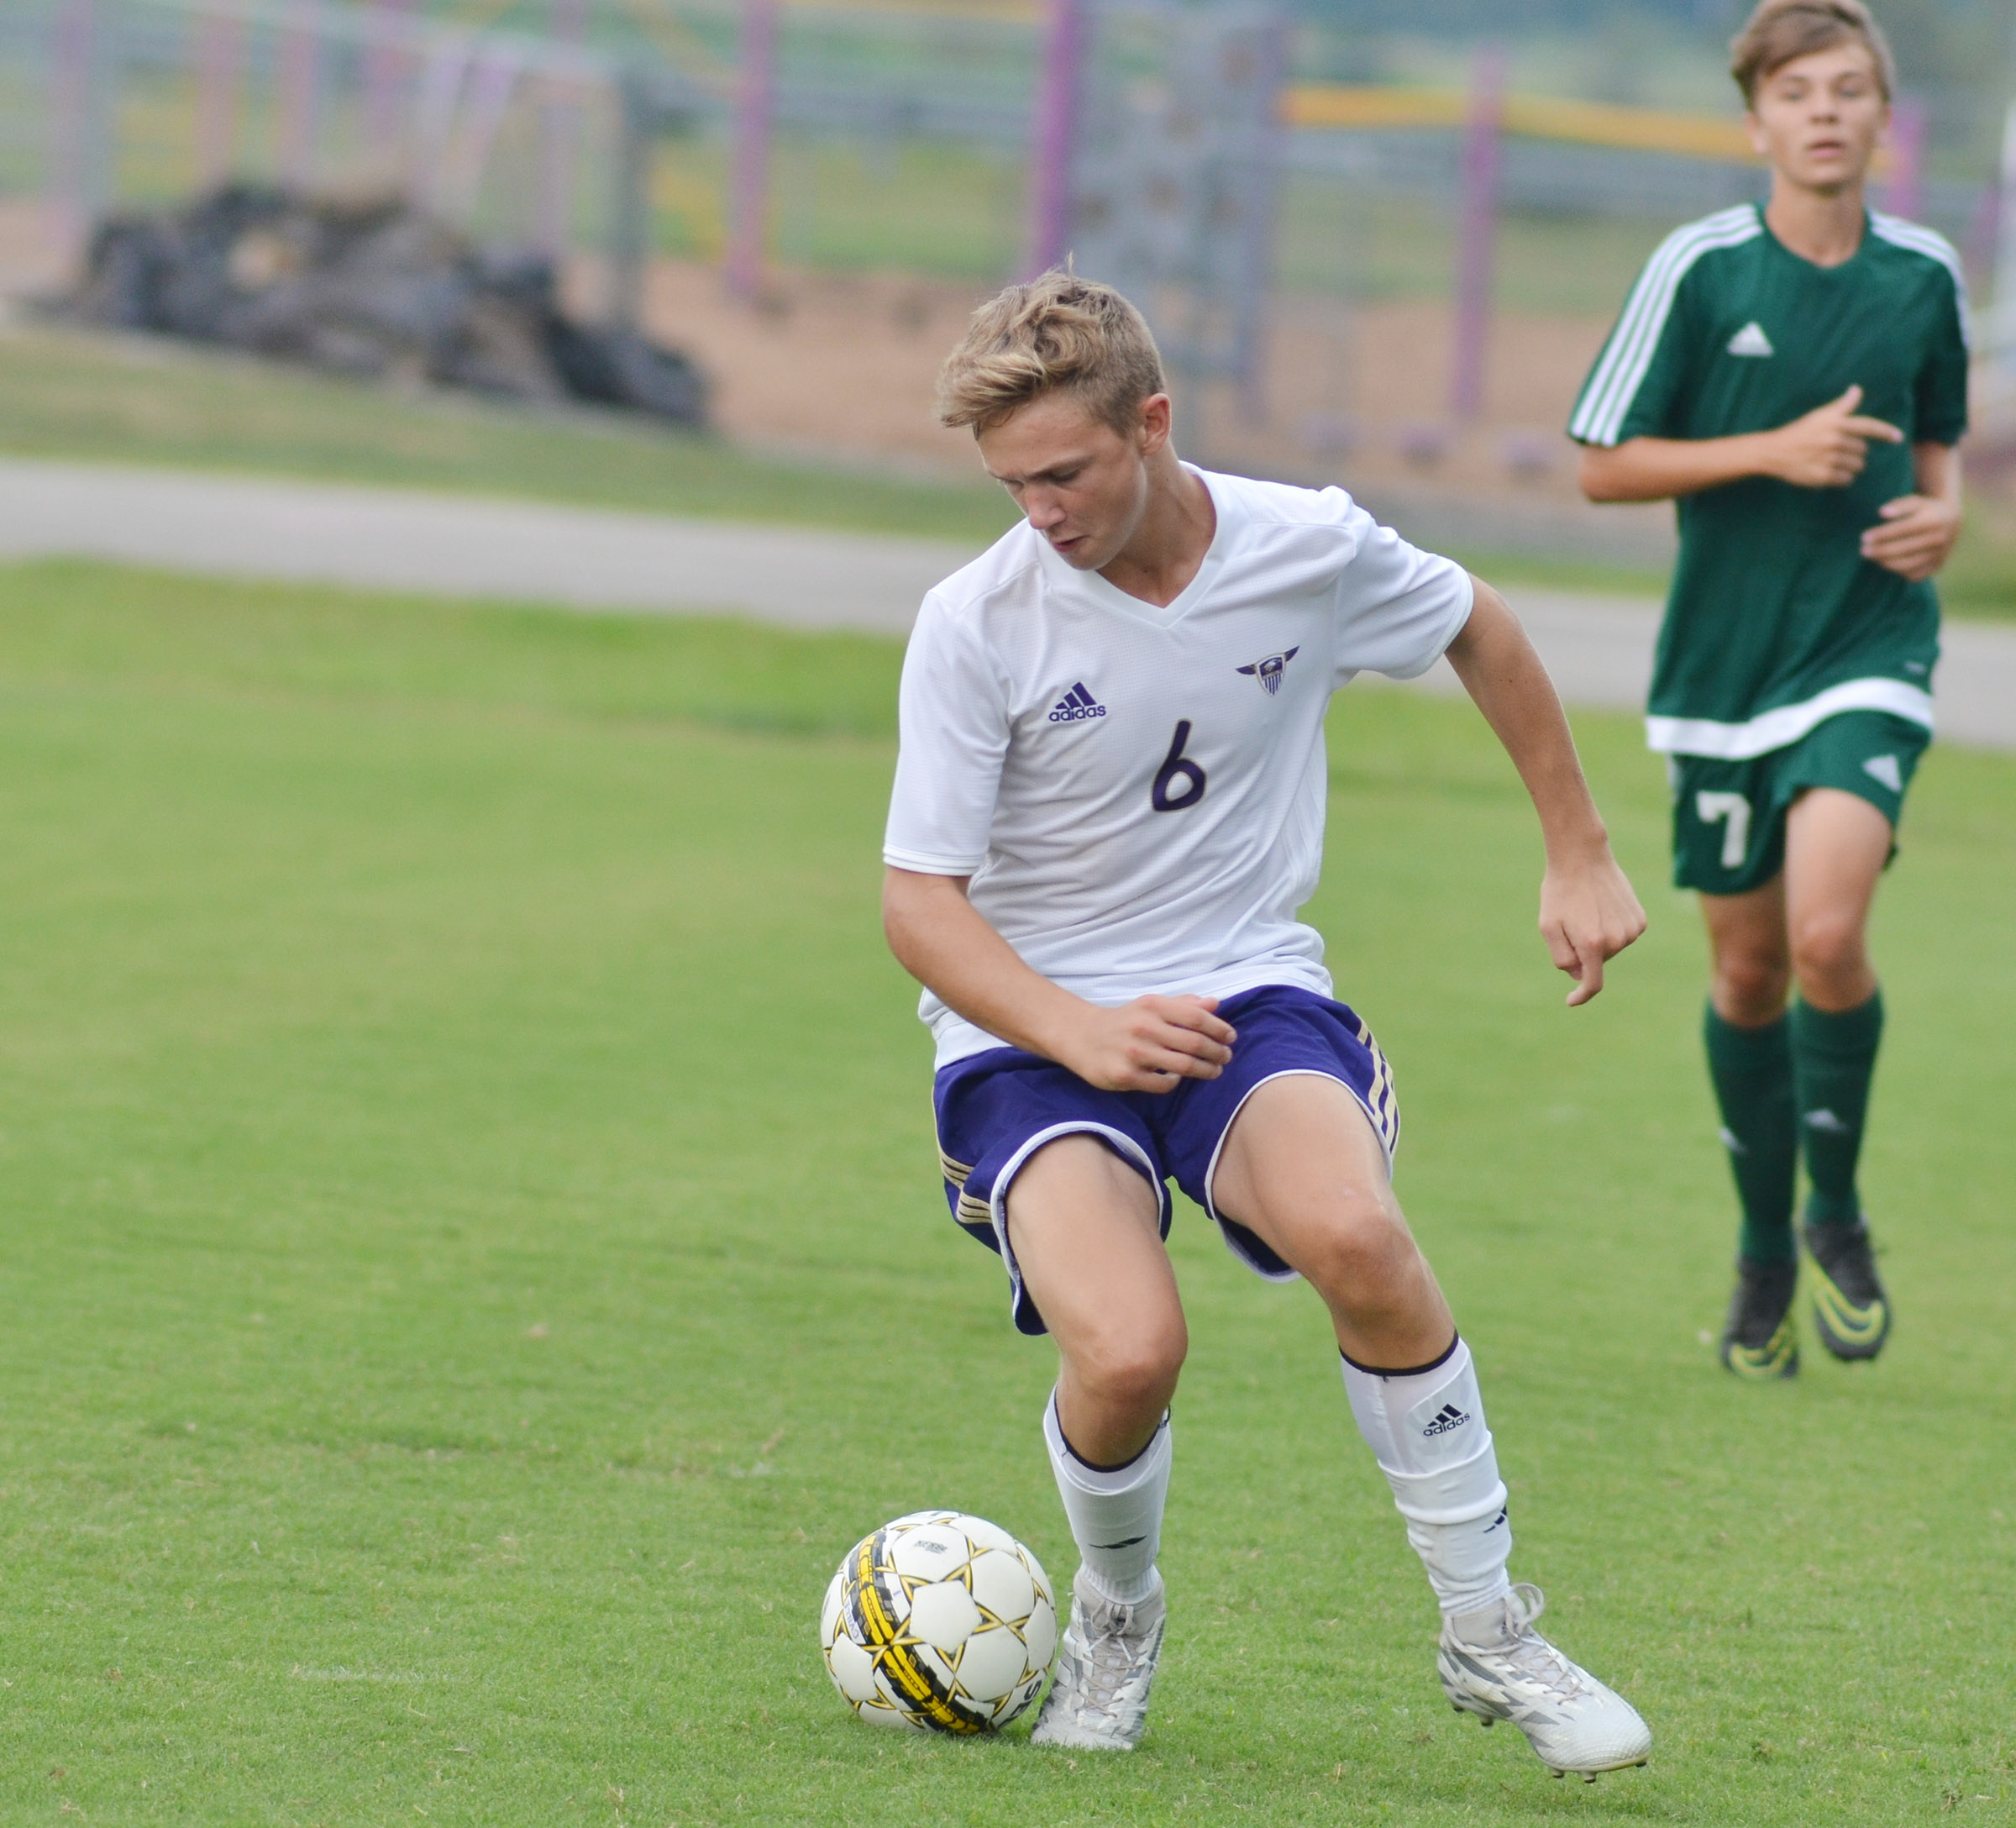 CHS freshman Blase Wheatley kicks the ball.